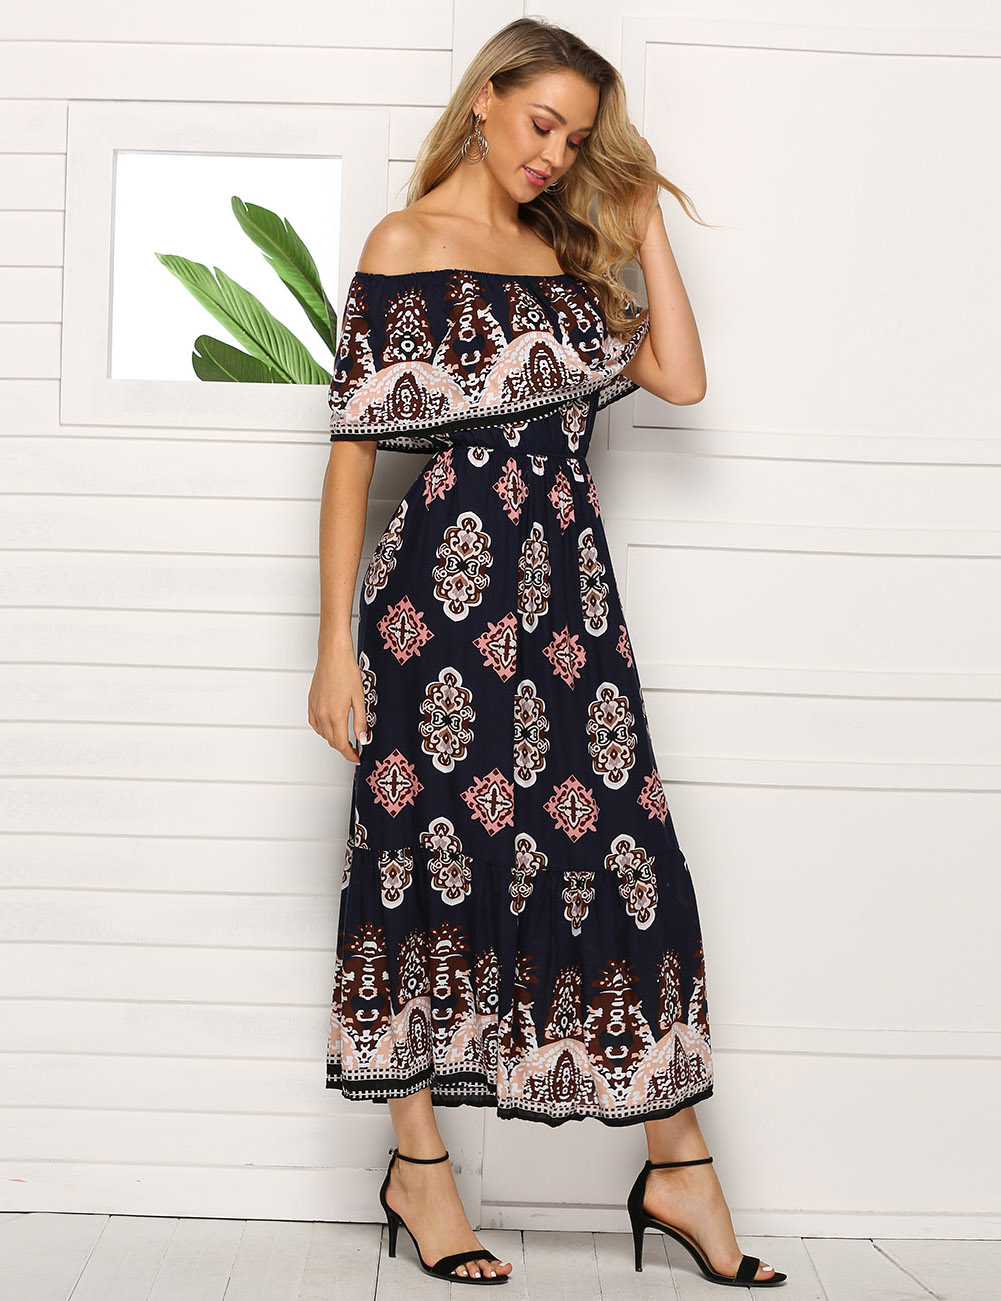 //cdn.affectcloud.com/feelingirldress/upload/imgs/2019-05-15/VZ190100-M06/VZ190100-M06-4.jpg